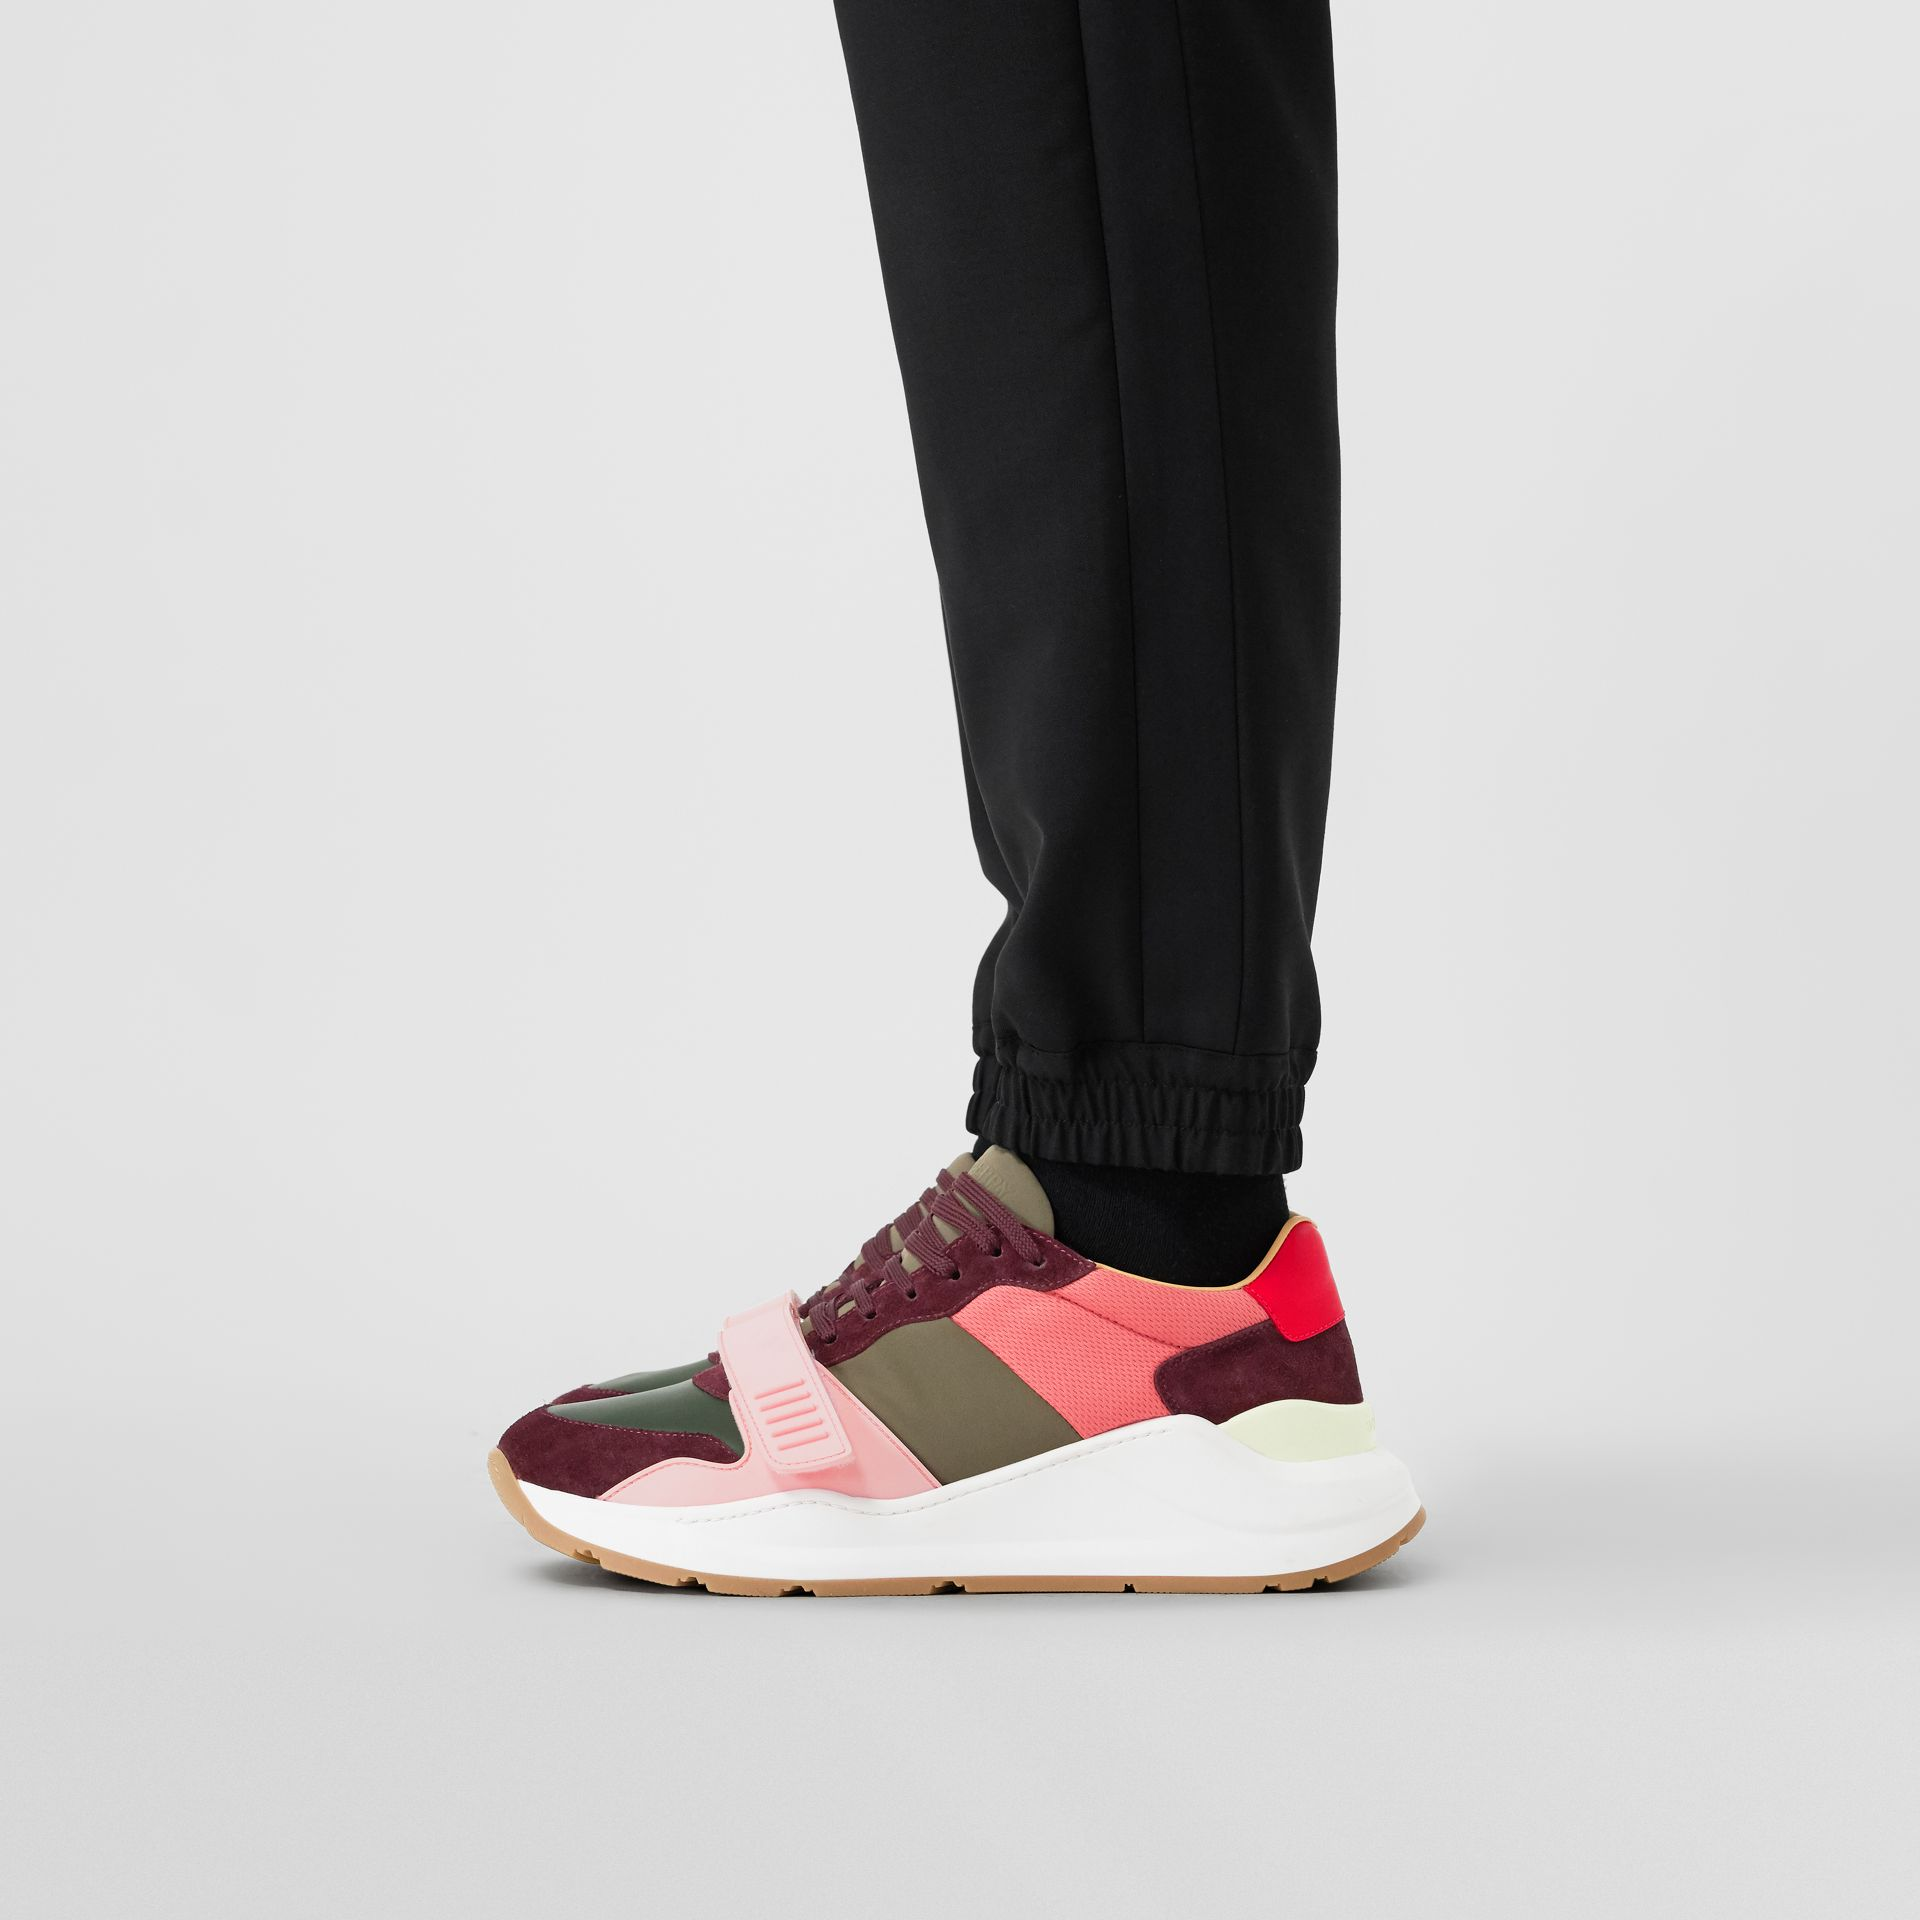 Colour Block Suede and Neoprene Sneakers in Bordeaux/khaki - Men | Burberry Hong Kong - gallery image 2